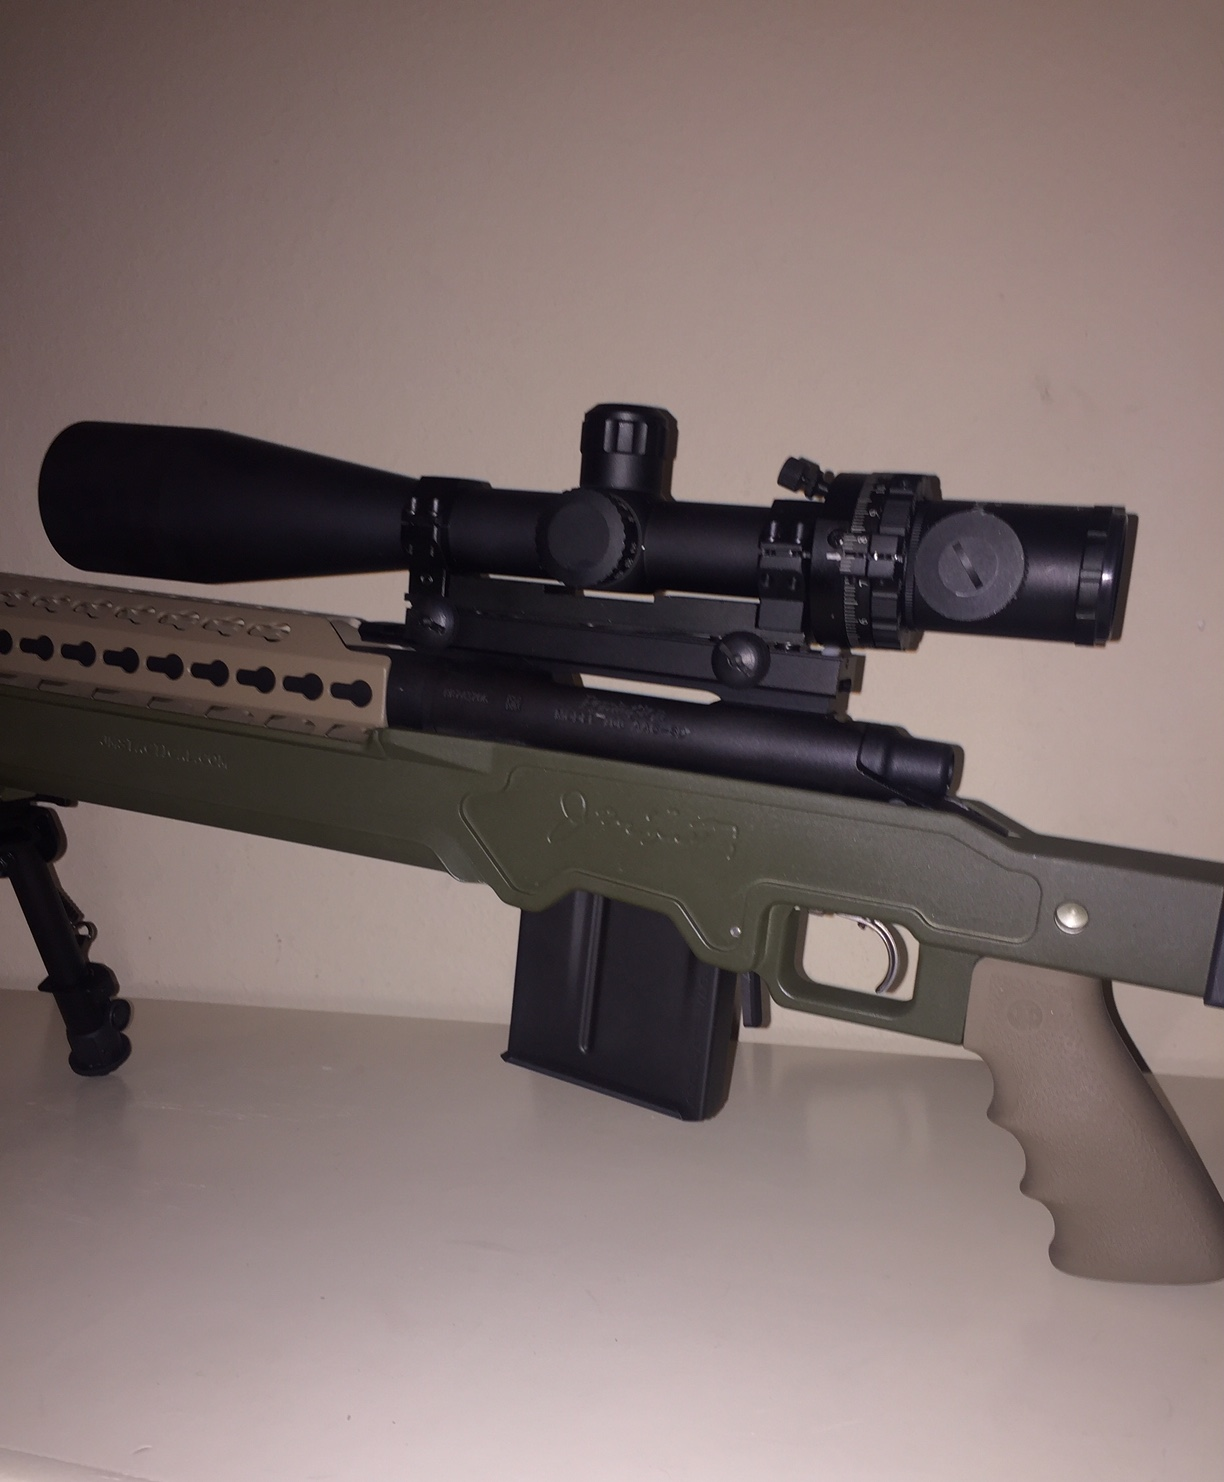 Remington 700 Tactical Chassis Jms Makes You Range Ready Remington870partsdiagram The Butt Plate Rests Against Shooters Jtac Thunder System